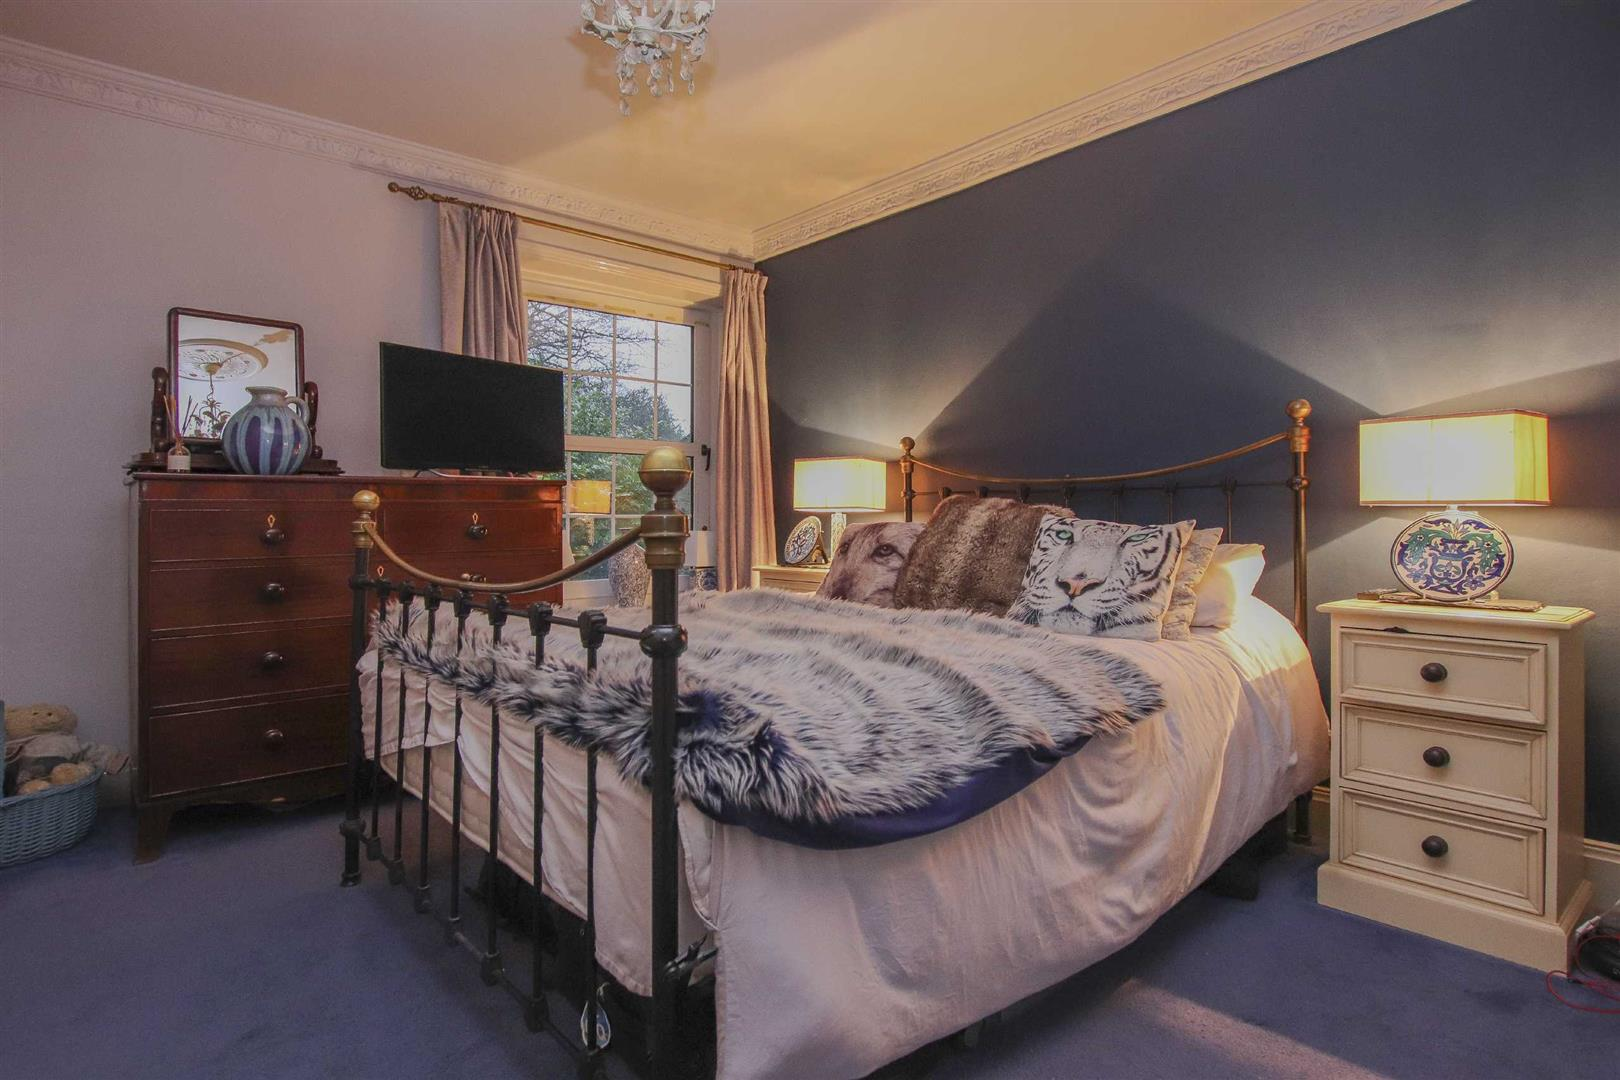 5 Bedroom Detached House For Sale - Image 12